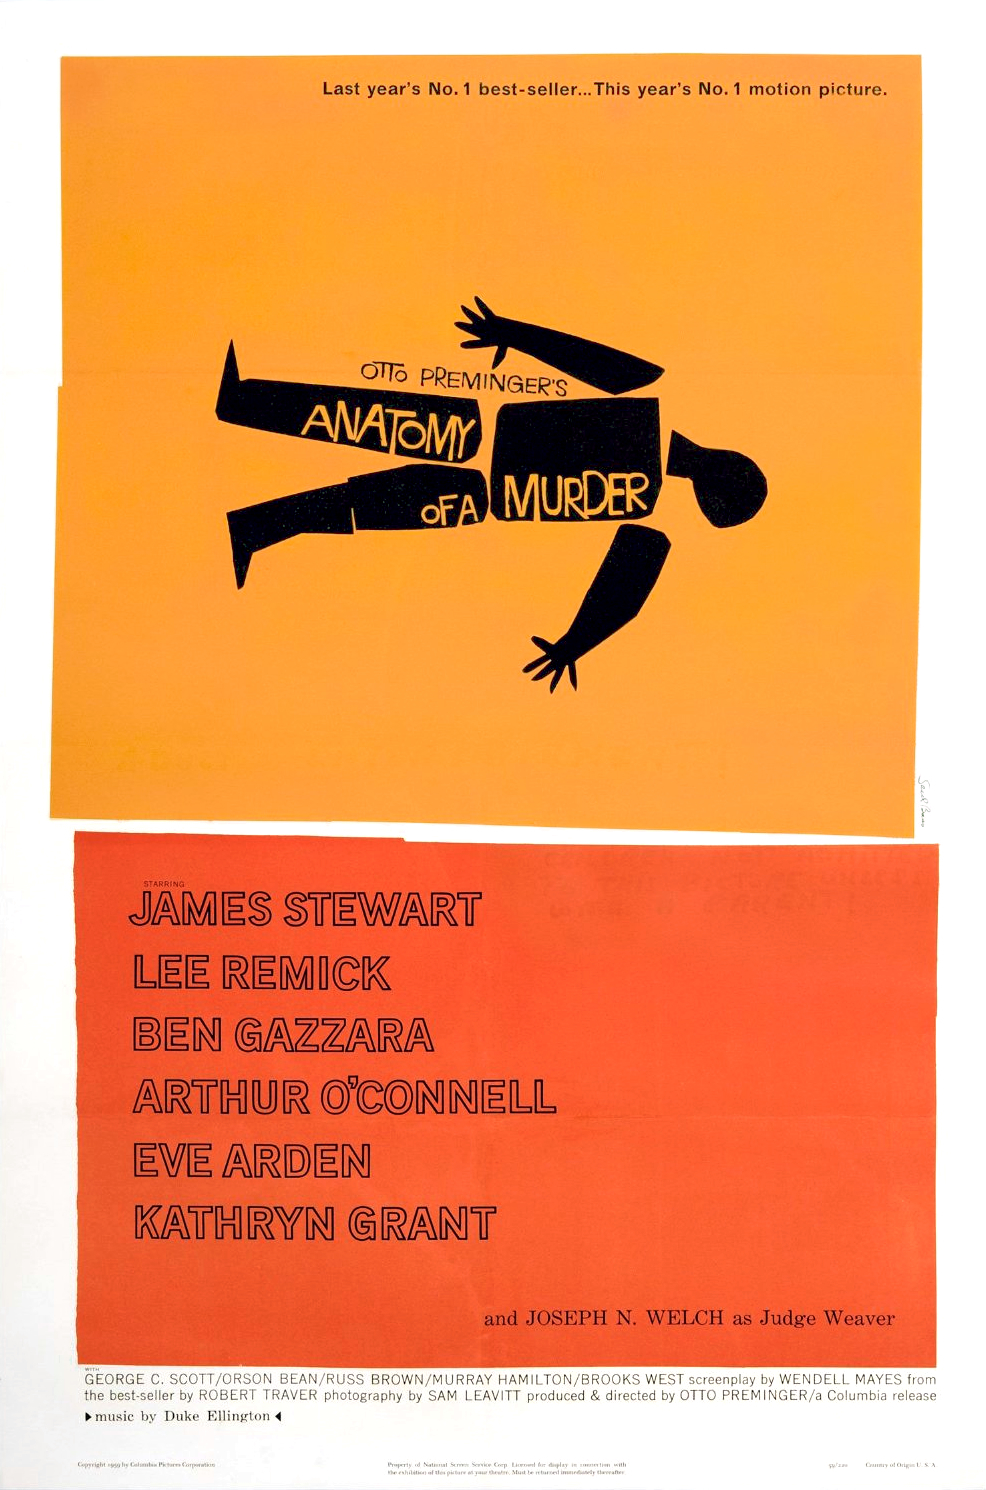 Anatomy of a Murder (1959) - Directed by: Otto PremingerStarring: James Stewart, Lee Remick, Ben Gazzara, Arthur O'Connell, George C. ScottRated: NR (Suggested PG-13 for Thematic Material Including Rape Related Dialogue)Running Time: 2 h 40 mTMM Score: 4 stars out of 5STRENGTHS: Acting, WritingWEAKNESSES: Length